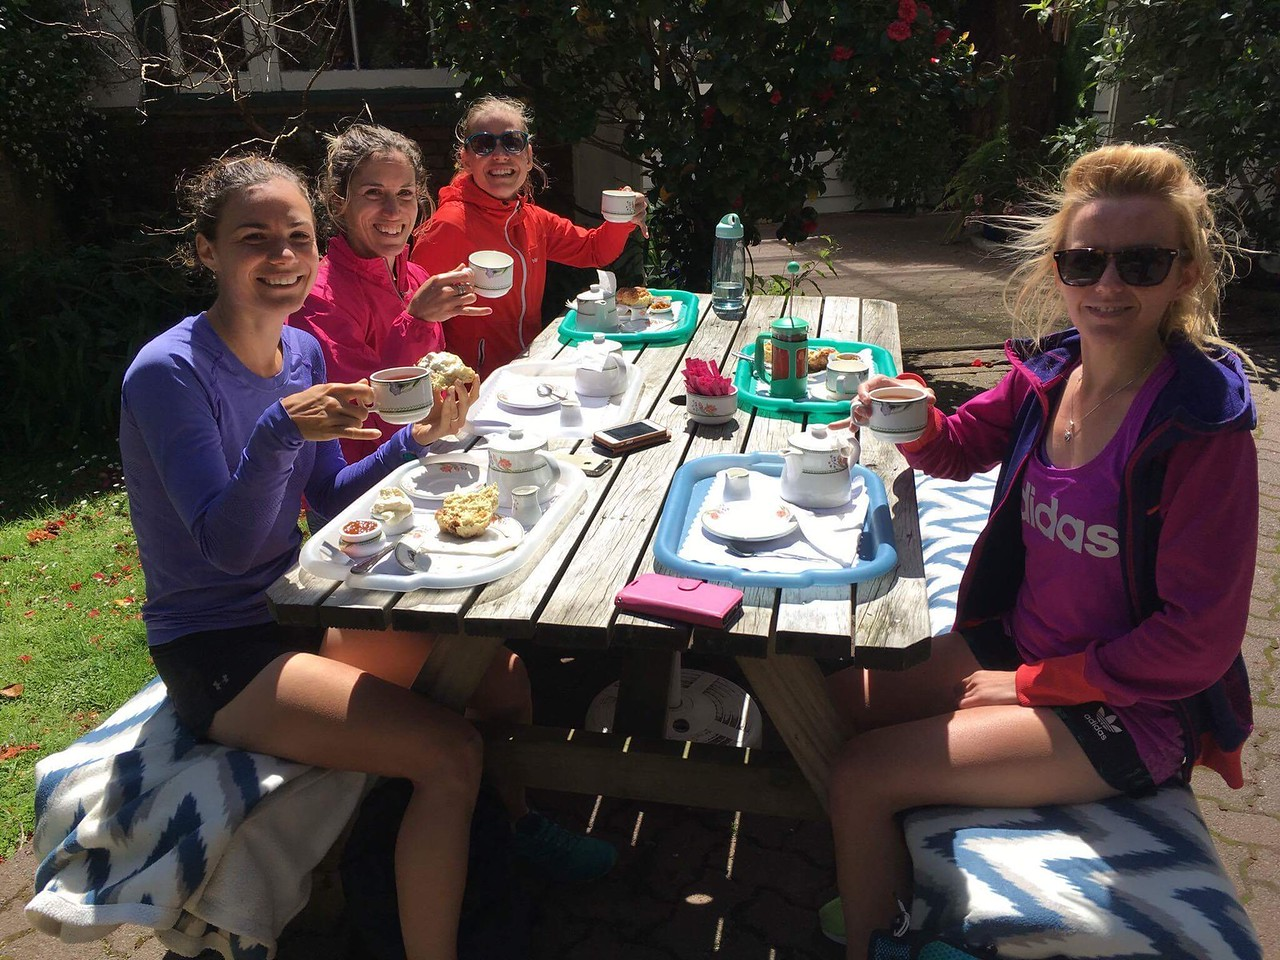 Yorkshire tea with scones after the run